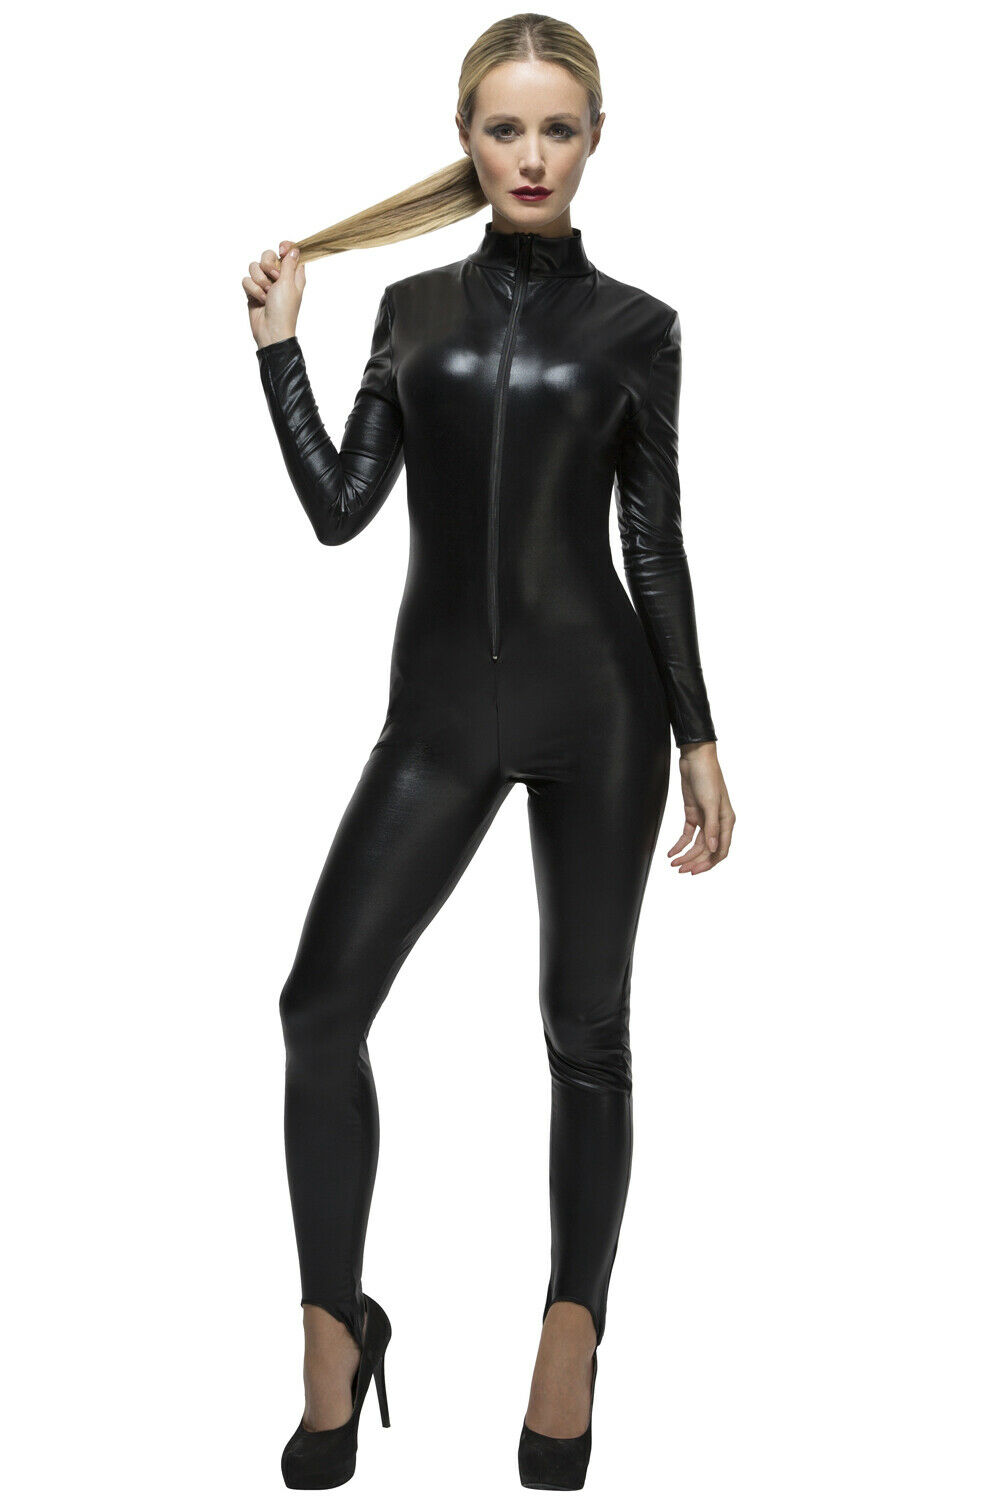 Brand New Fever Miss Whiplash Catwoman Inspired Catsuit Adult Costume (Black)